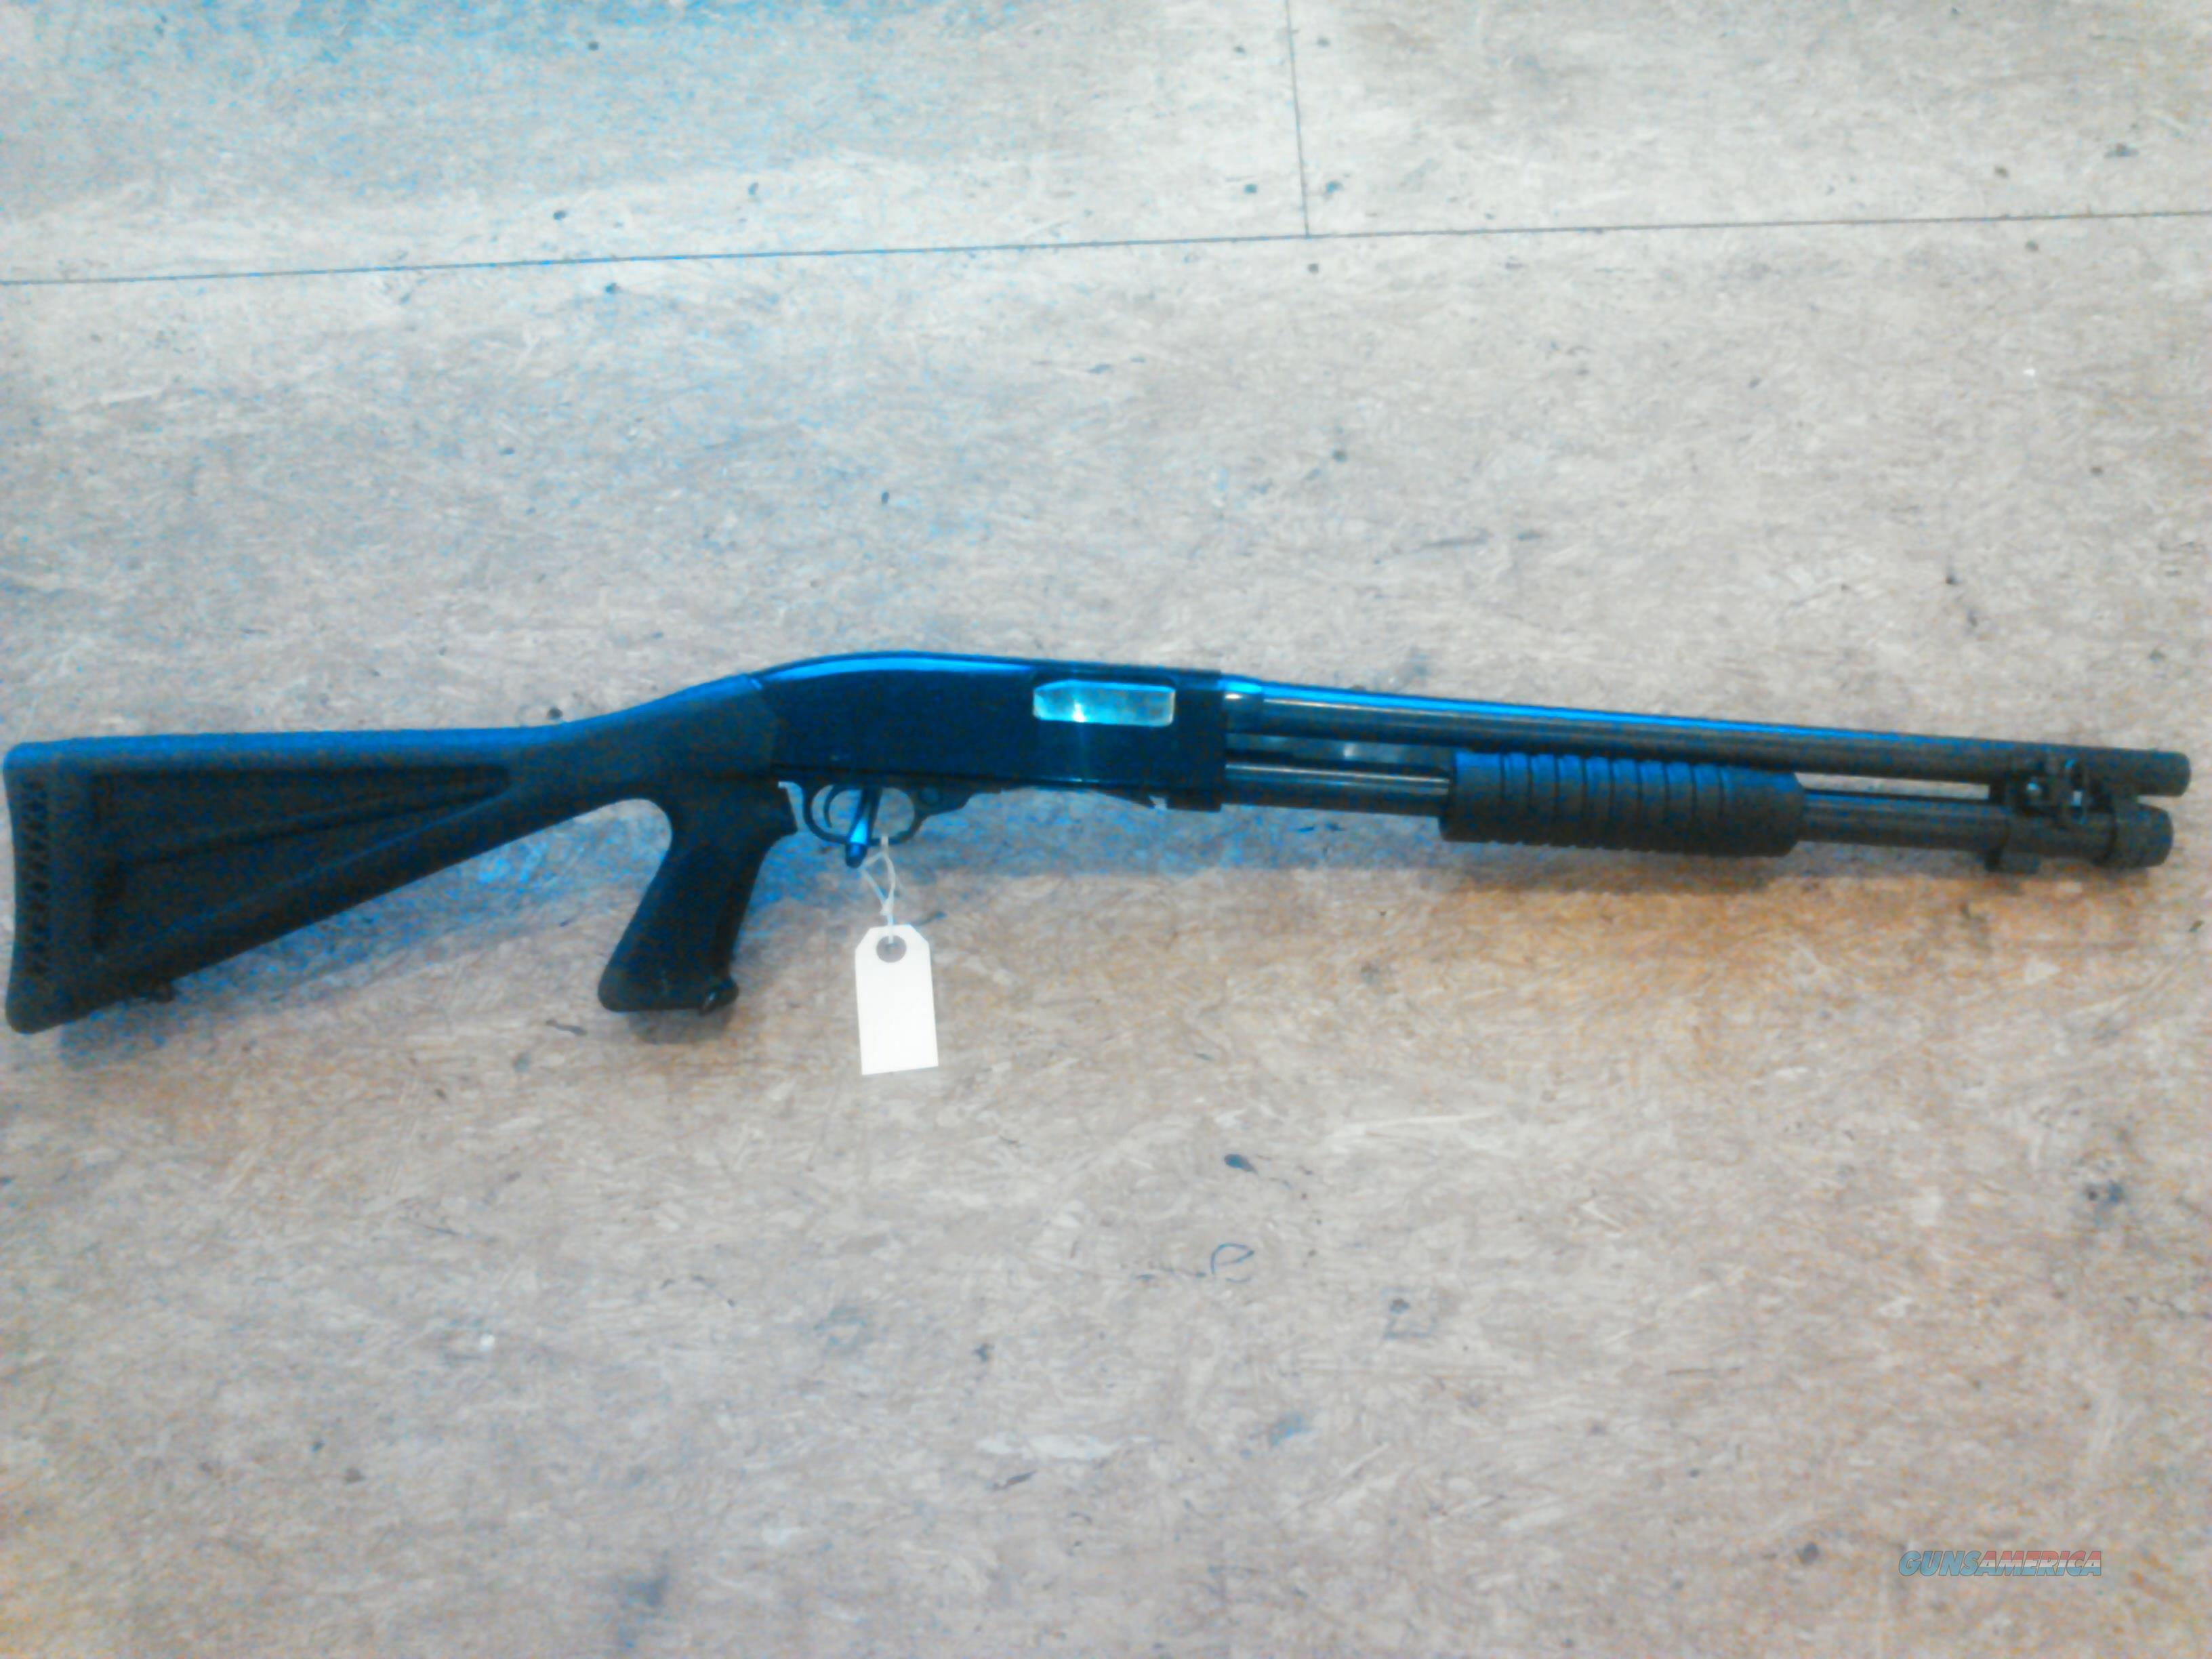 "WINCHESTER 1200 DEFENDER TACTICAL 12GA  8RD CAPACITY  18.5""BL, FREE SHIPPING NO CC FEE (mossberg, cruiser, 88, defense)  Guns > Shotguns > Winchester Shotguns - Modern > Pump Action > Defense/Tactical"